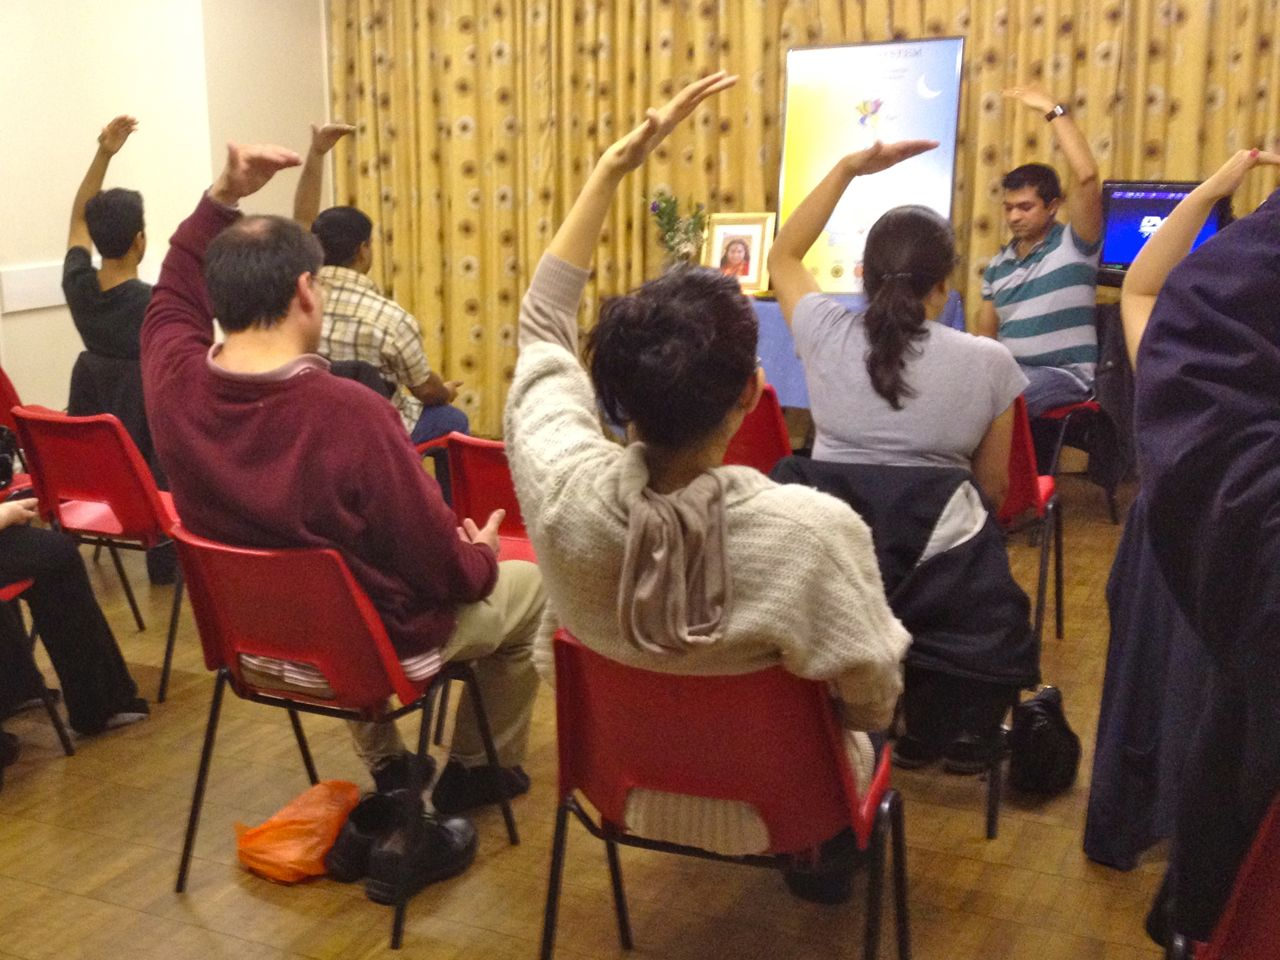 Weekly Workshop - Dealing with Stress